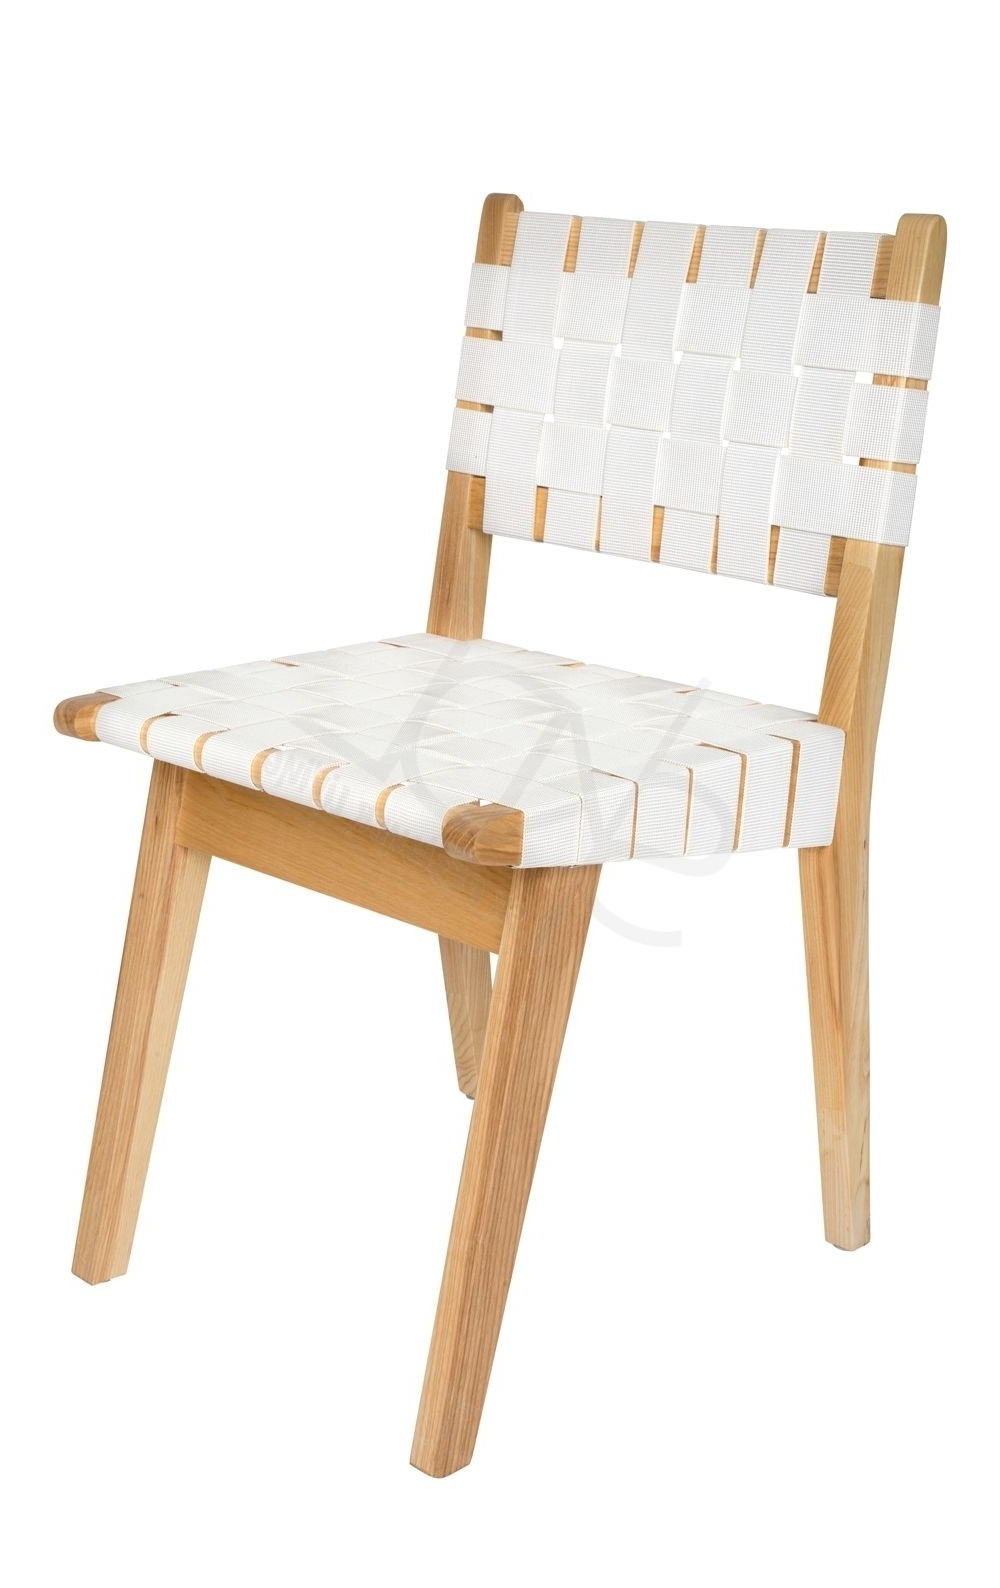 Replica Jens Risom Dining Chair Inside Widely Used Perth White Dining Chairs (View 18 of 25)